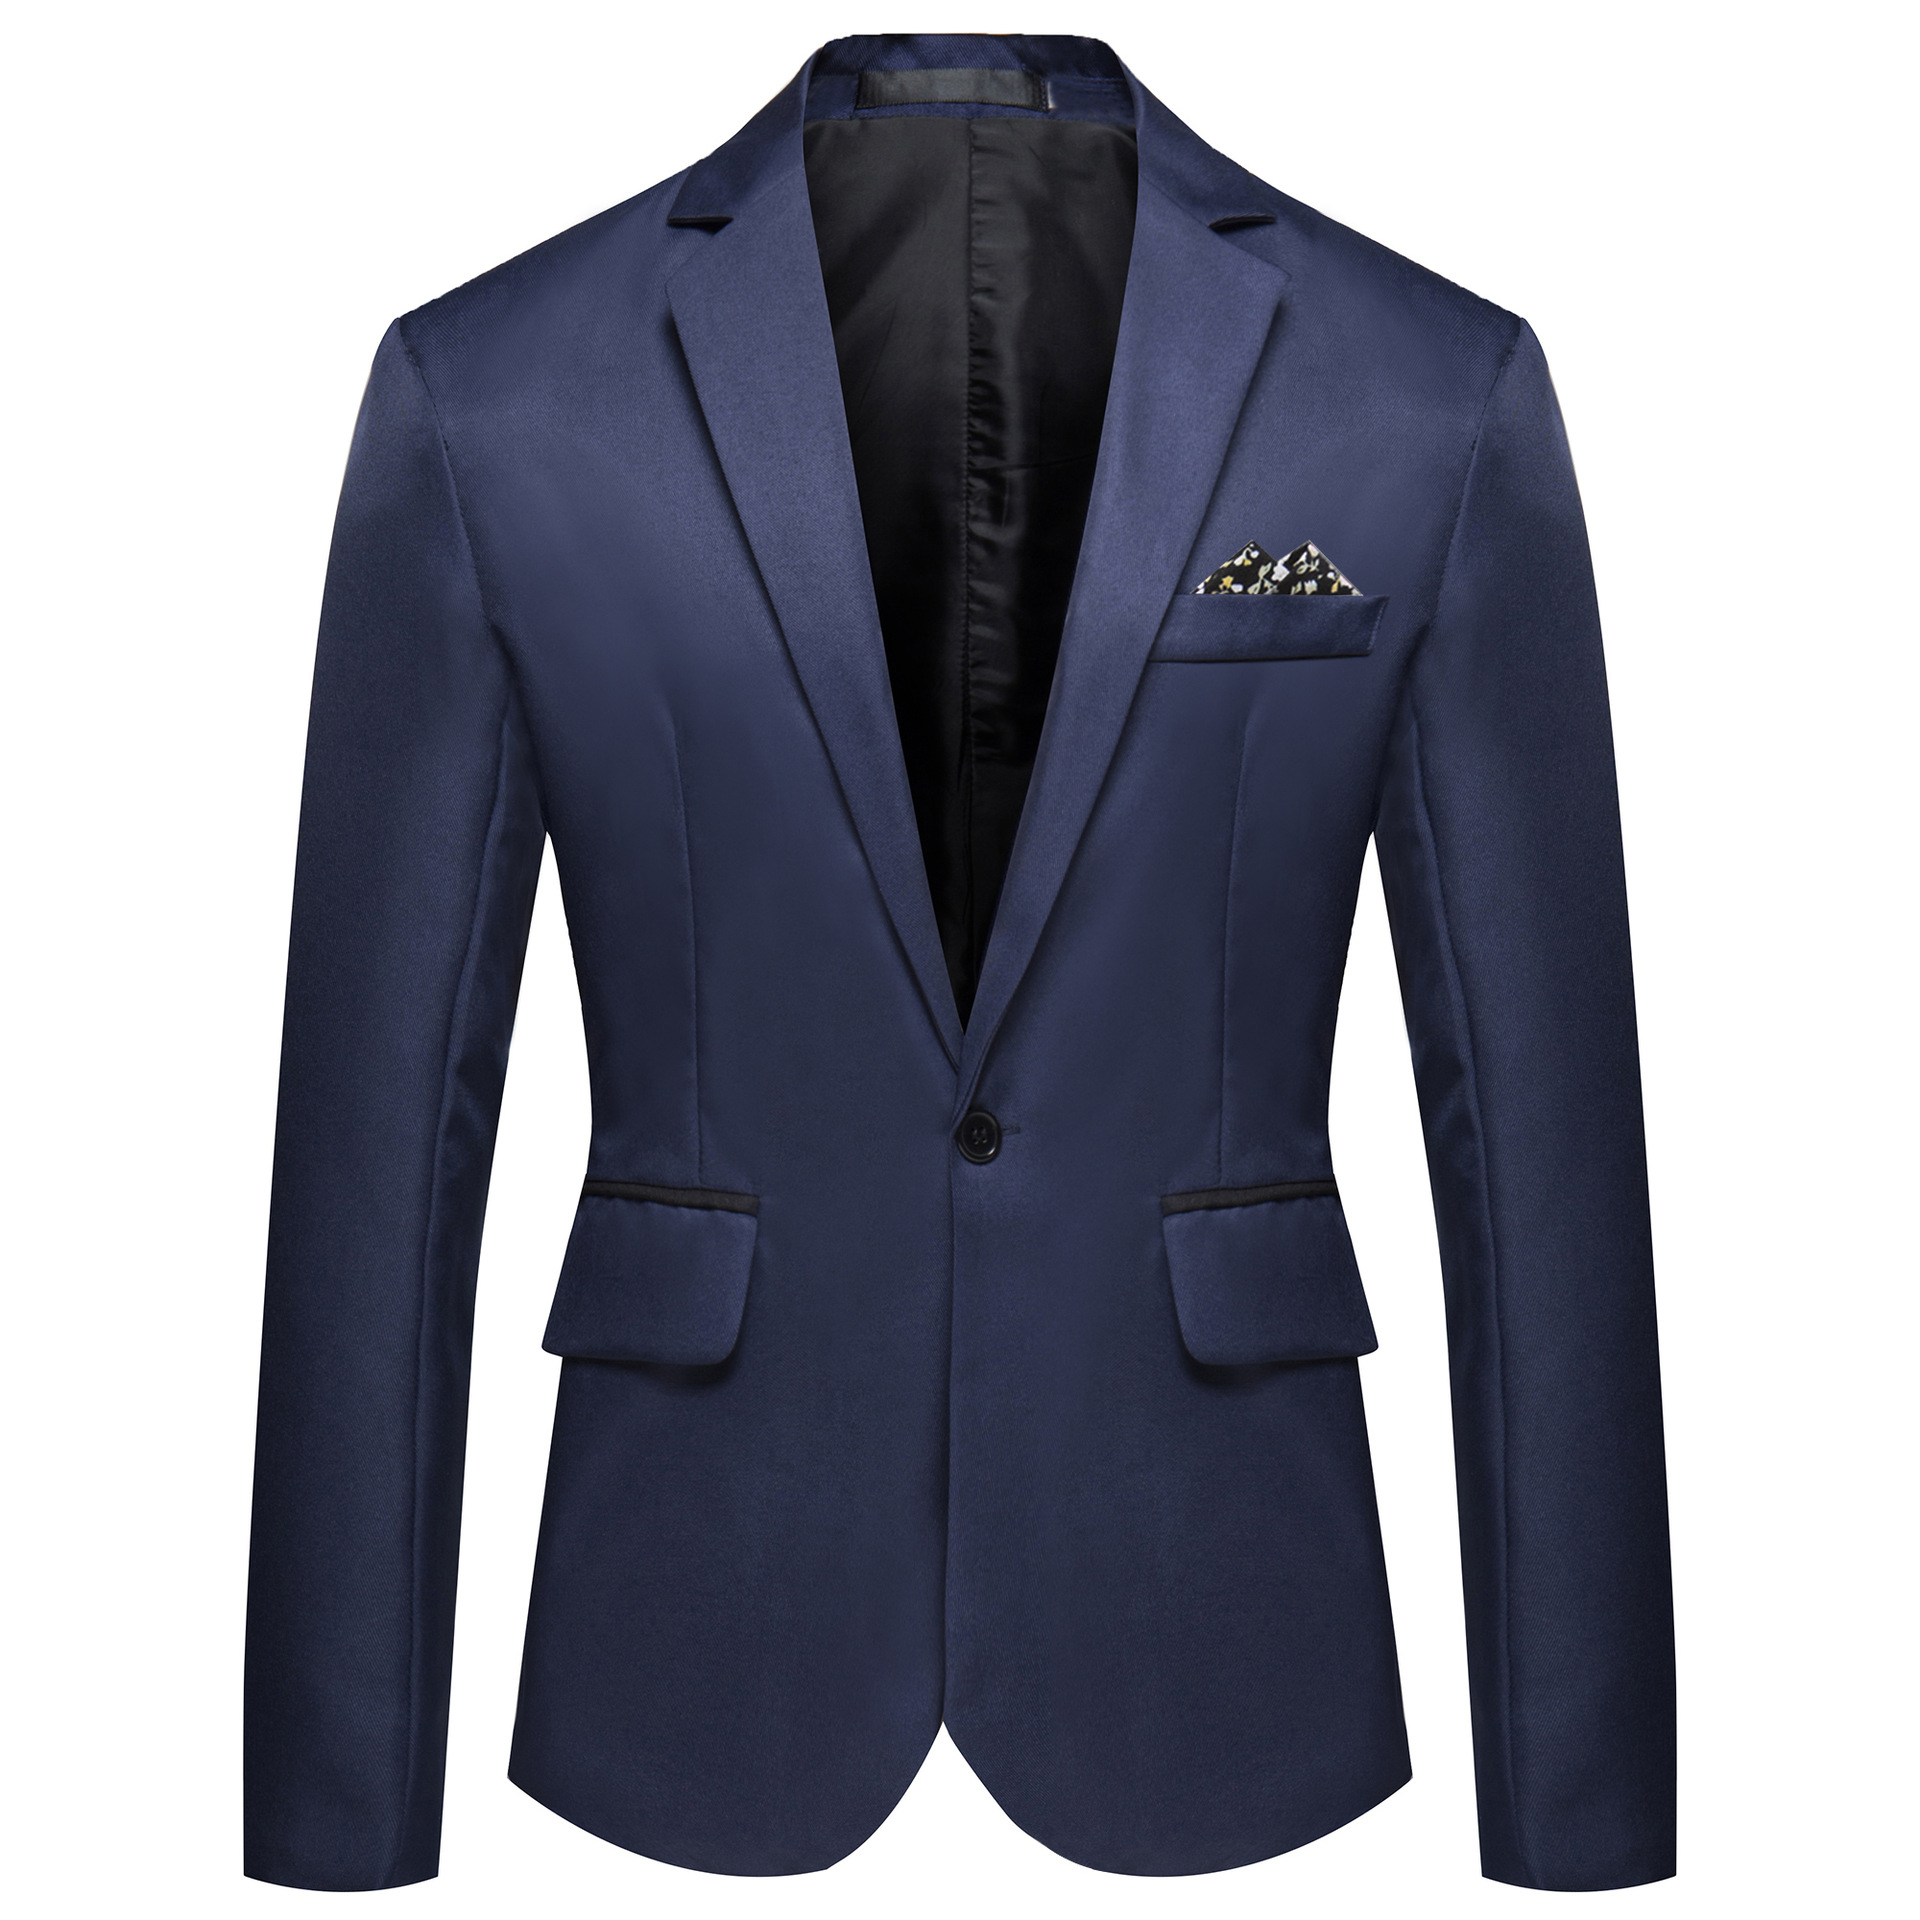 Autumn And Winter New Style Solid Color Versatile Men's Suit Hot Sales Large Size Men Single Row Of A Buckle Small Suit